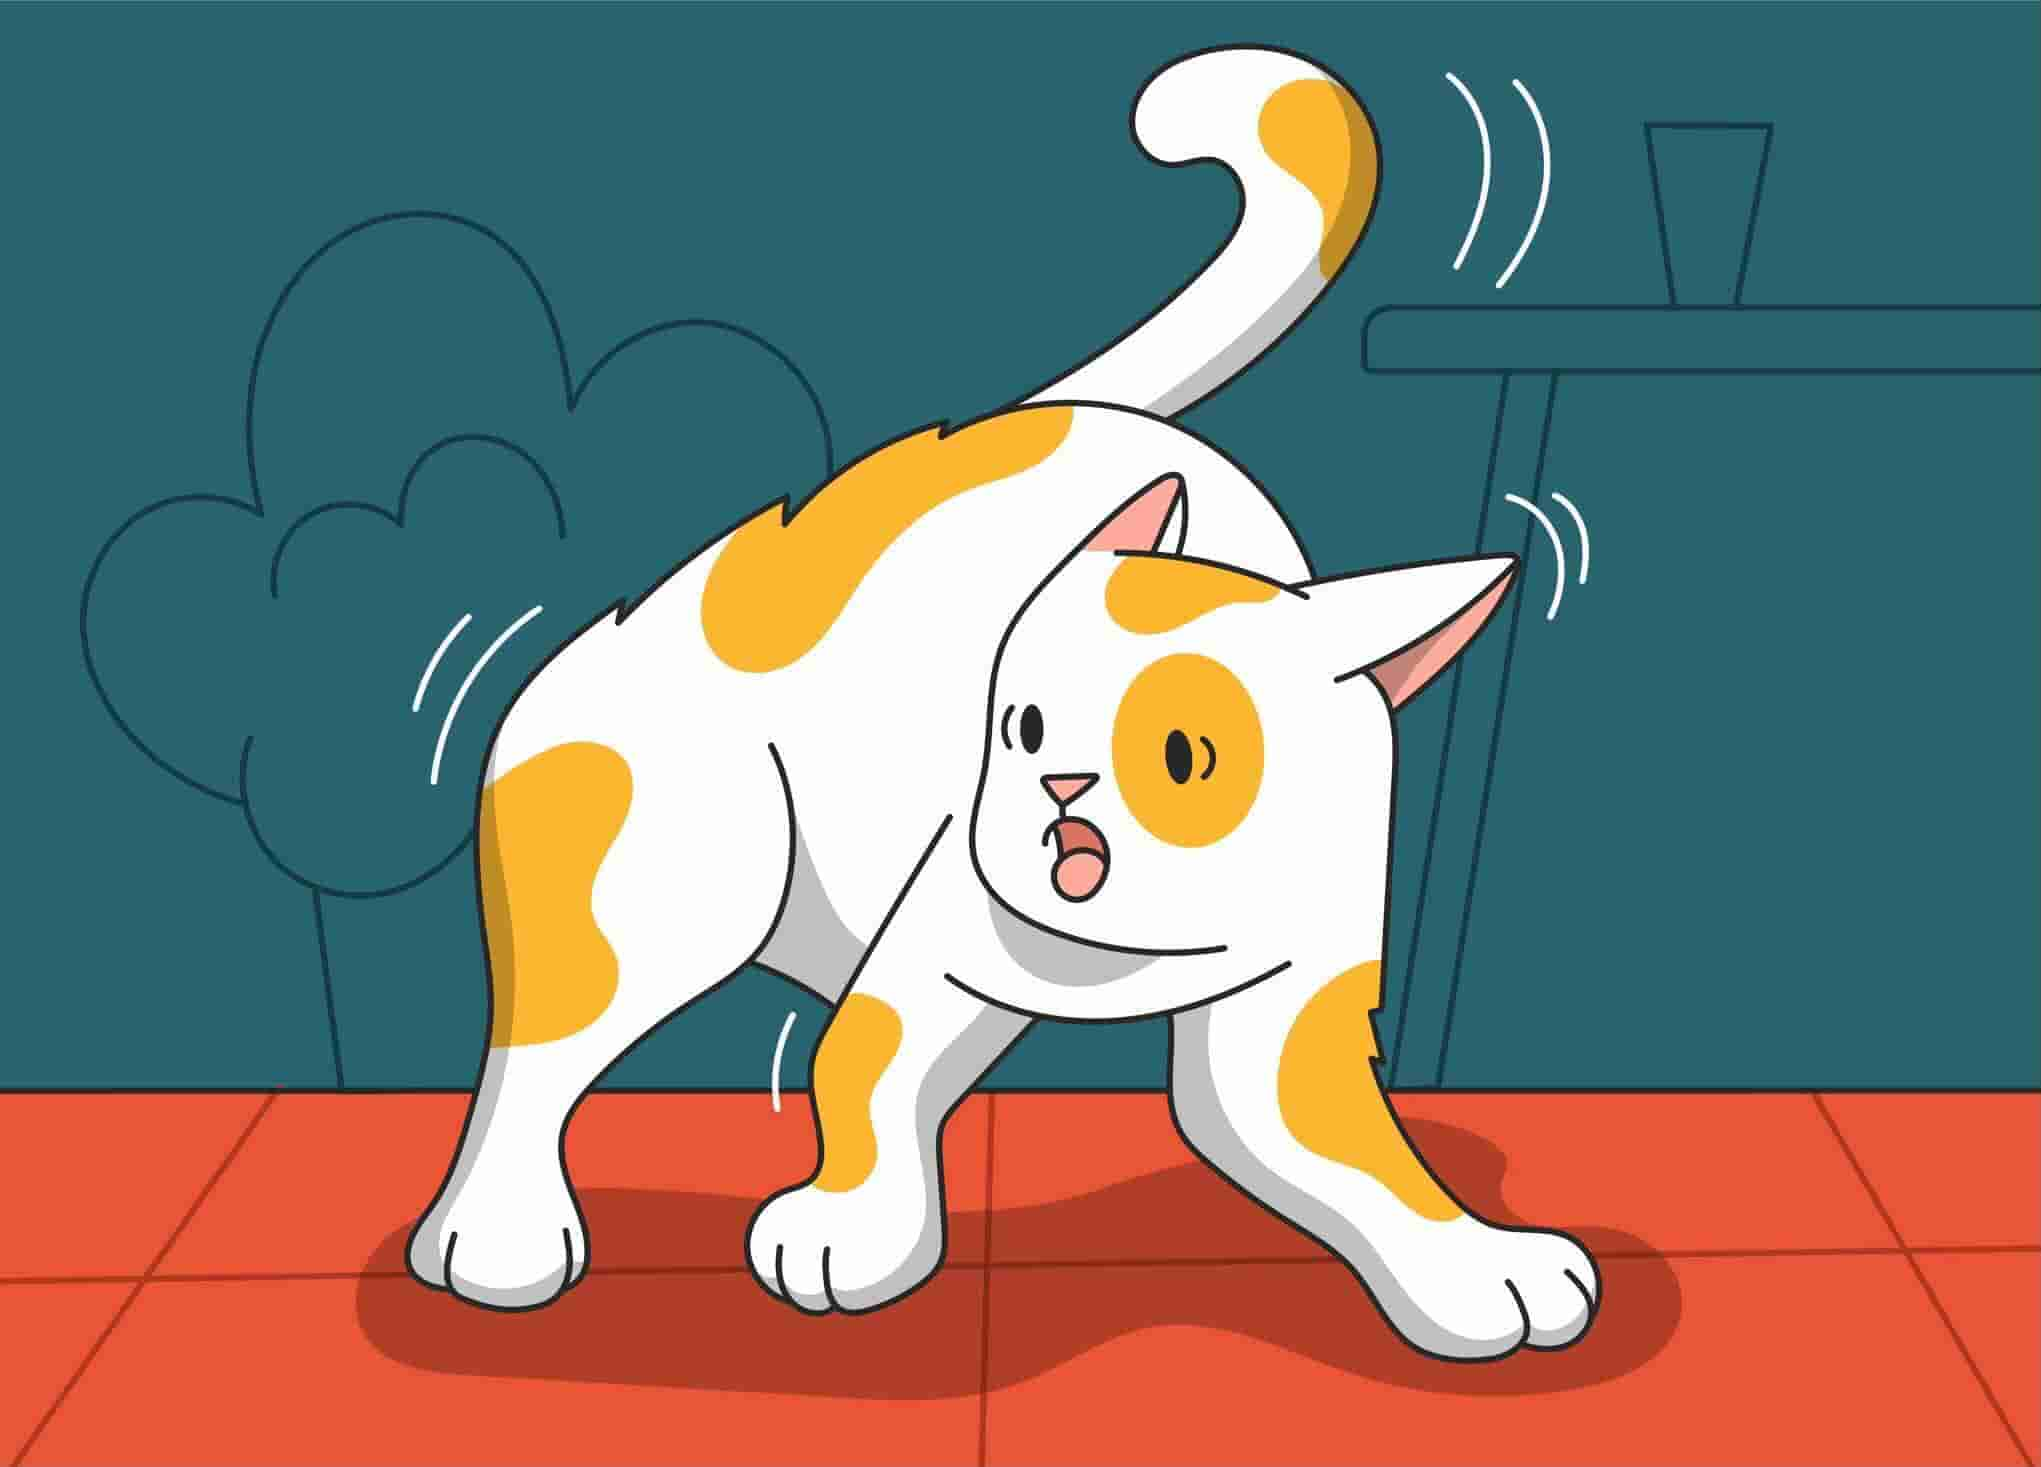 Skittish Kitty: How to Comfort a Scared Cat